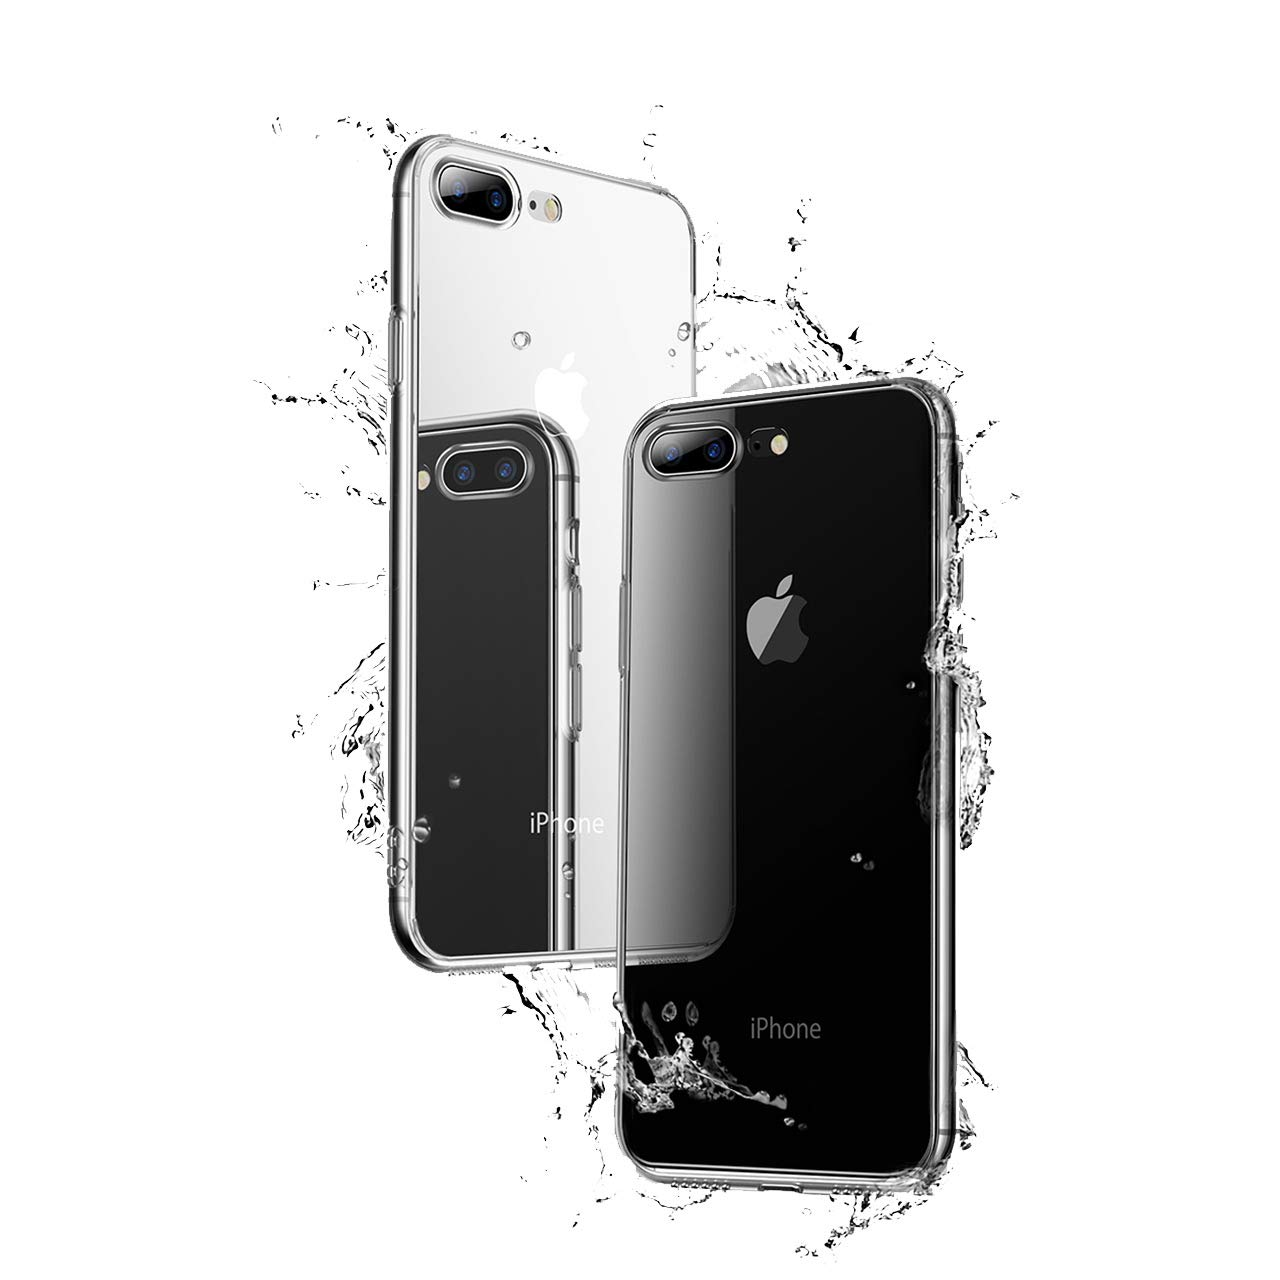 Amazon.com: Funda para iPhone 7 Plus, iPhone 8 Plus ...